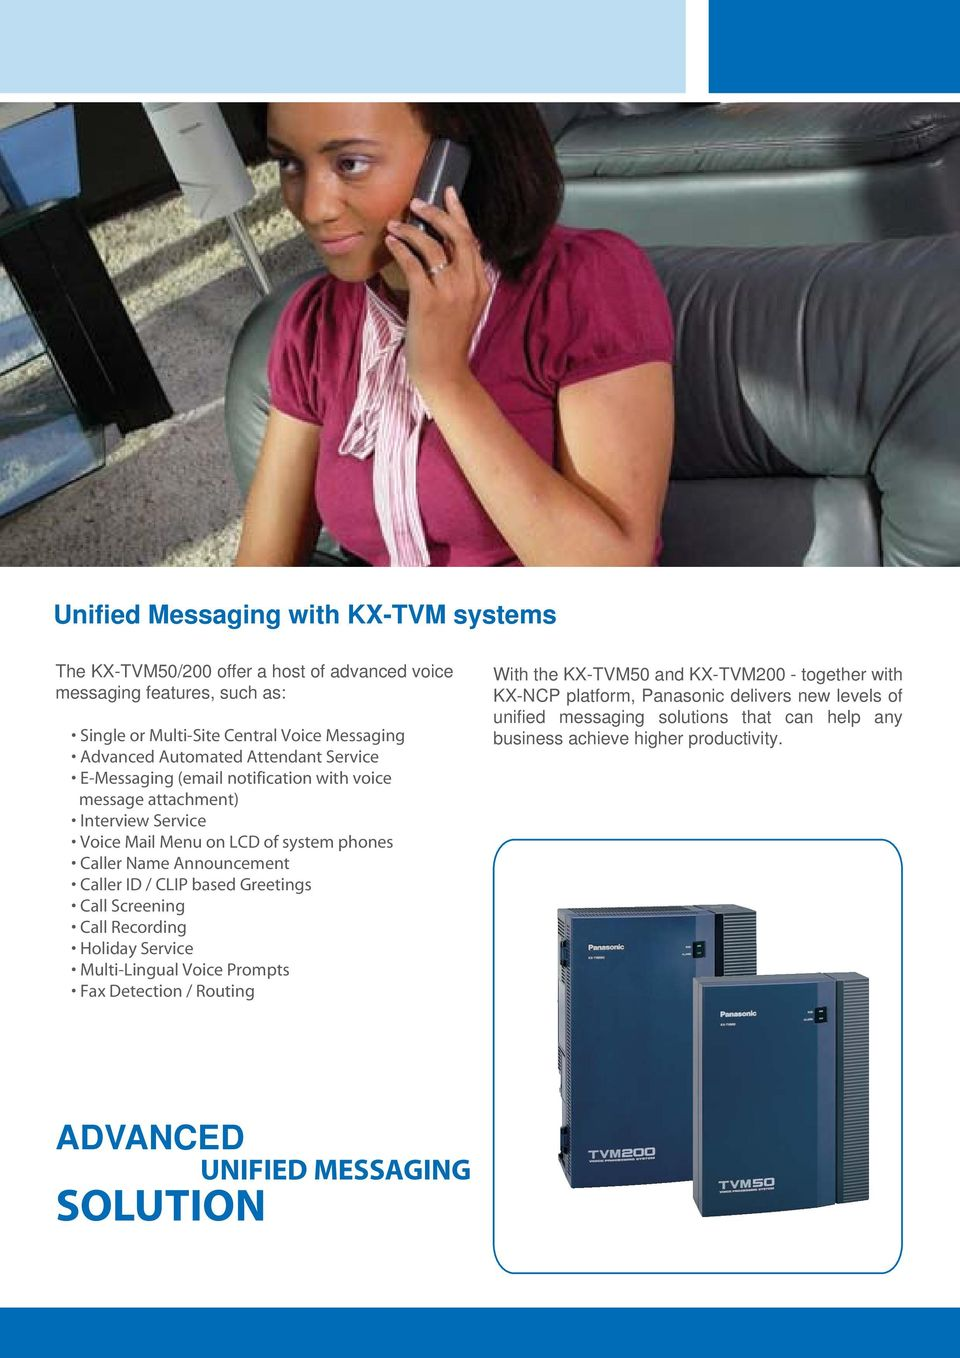 Announcement Caller ID / CLIP based Greetings Call Screening Call Recording Holiday Service Multi-Lingual Voice Prompts Fax Detection / Routing With the KX-TVM50 and